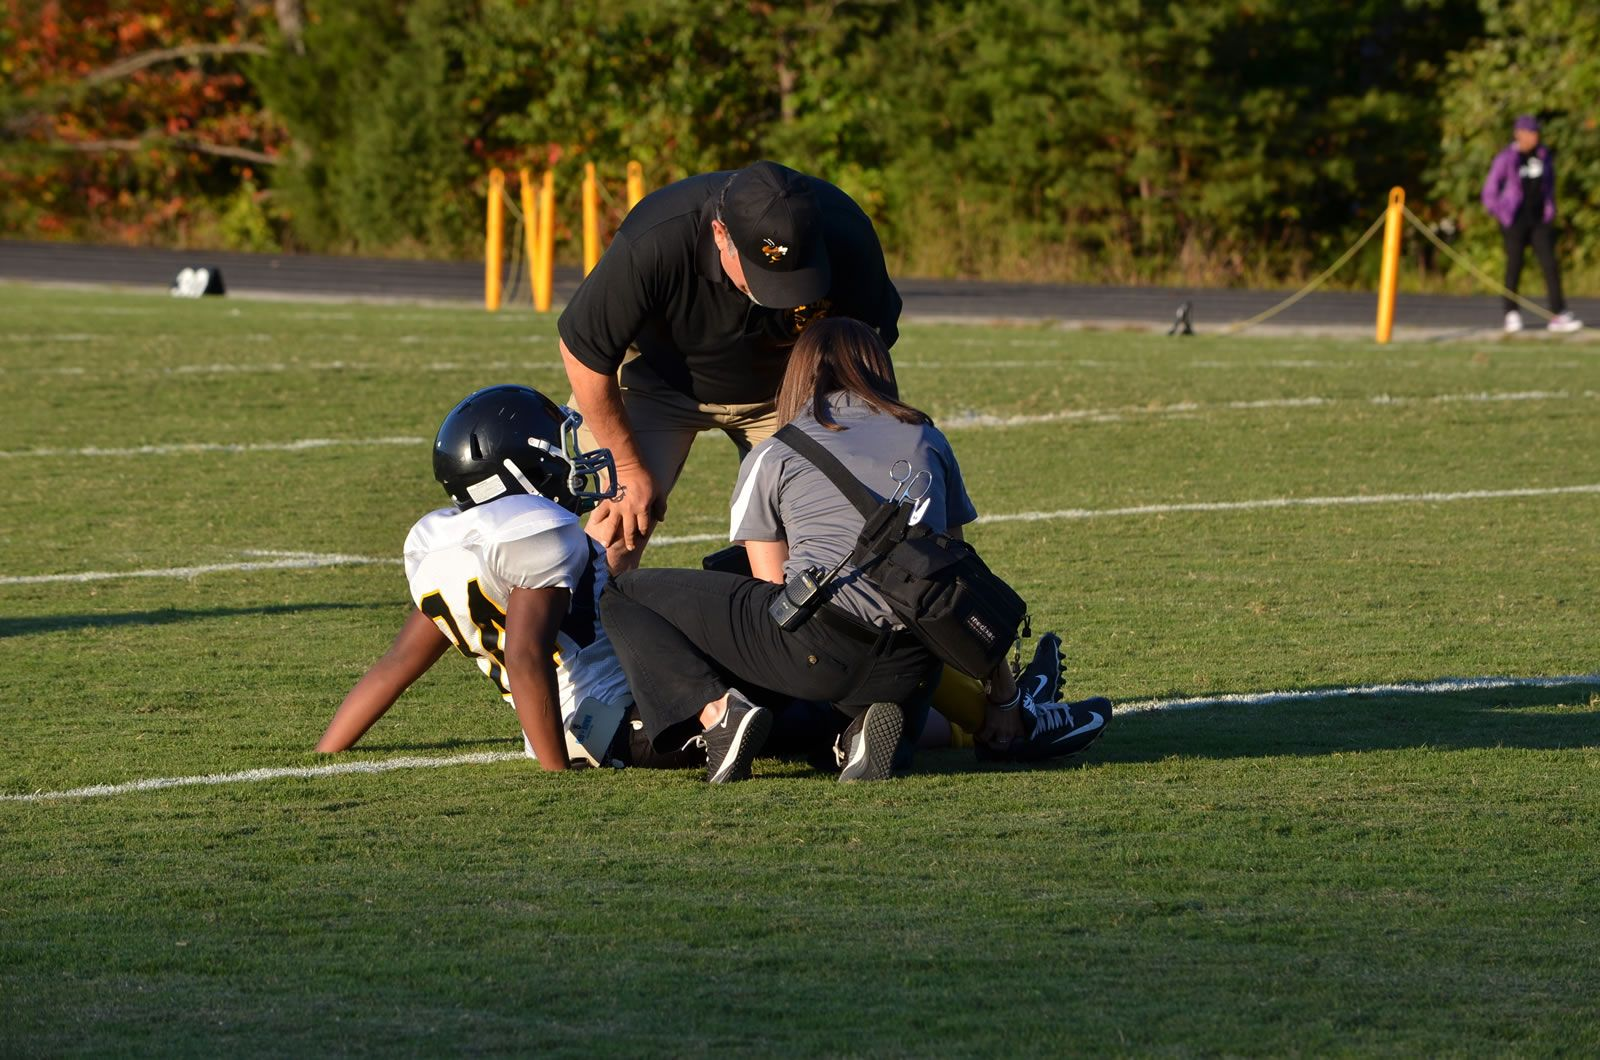 Kaitlin Romm works as Athletic Trainer on football field